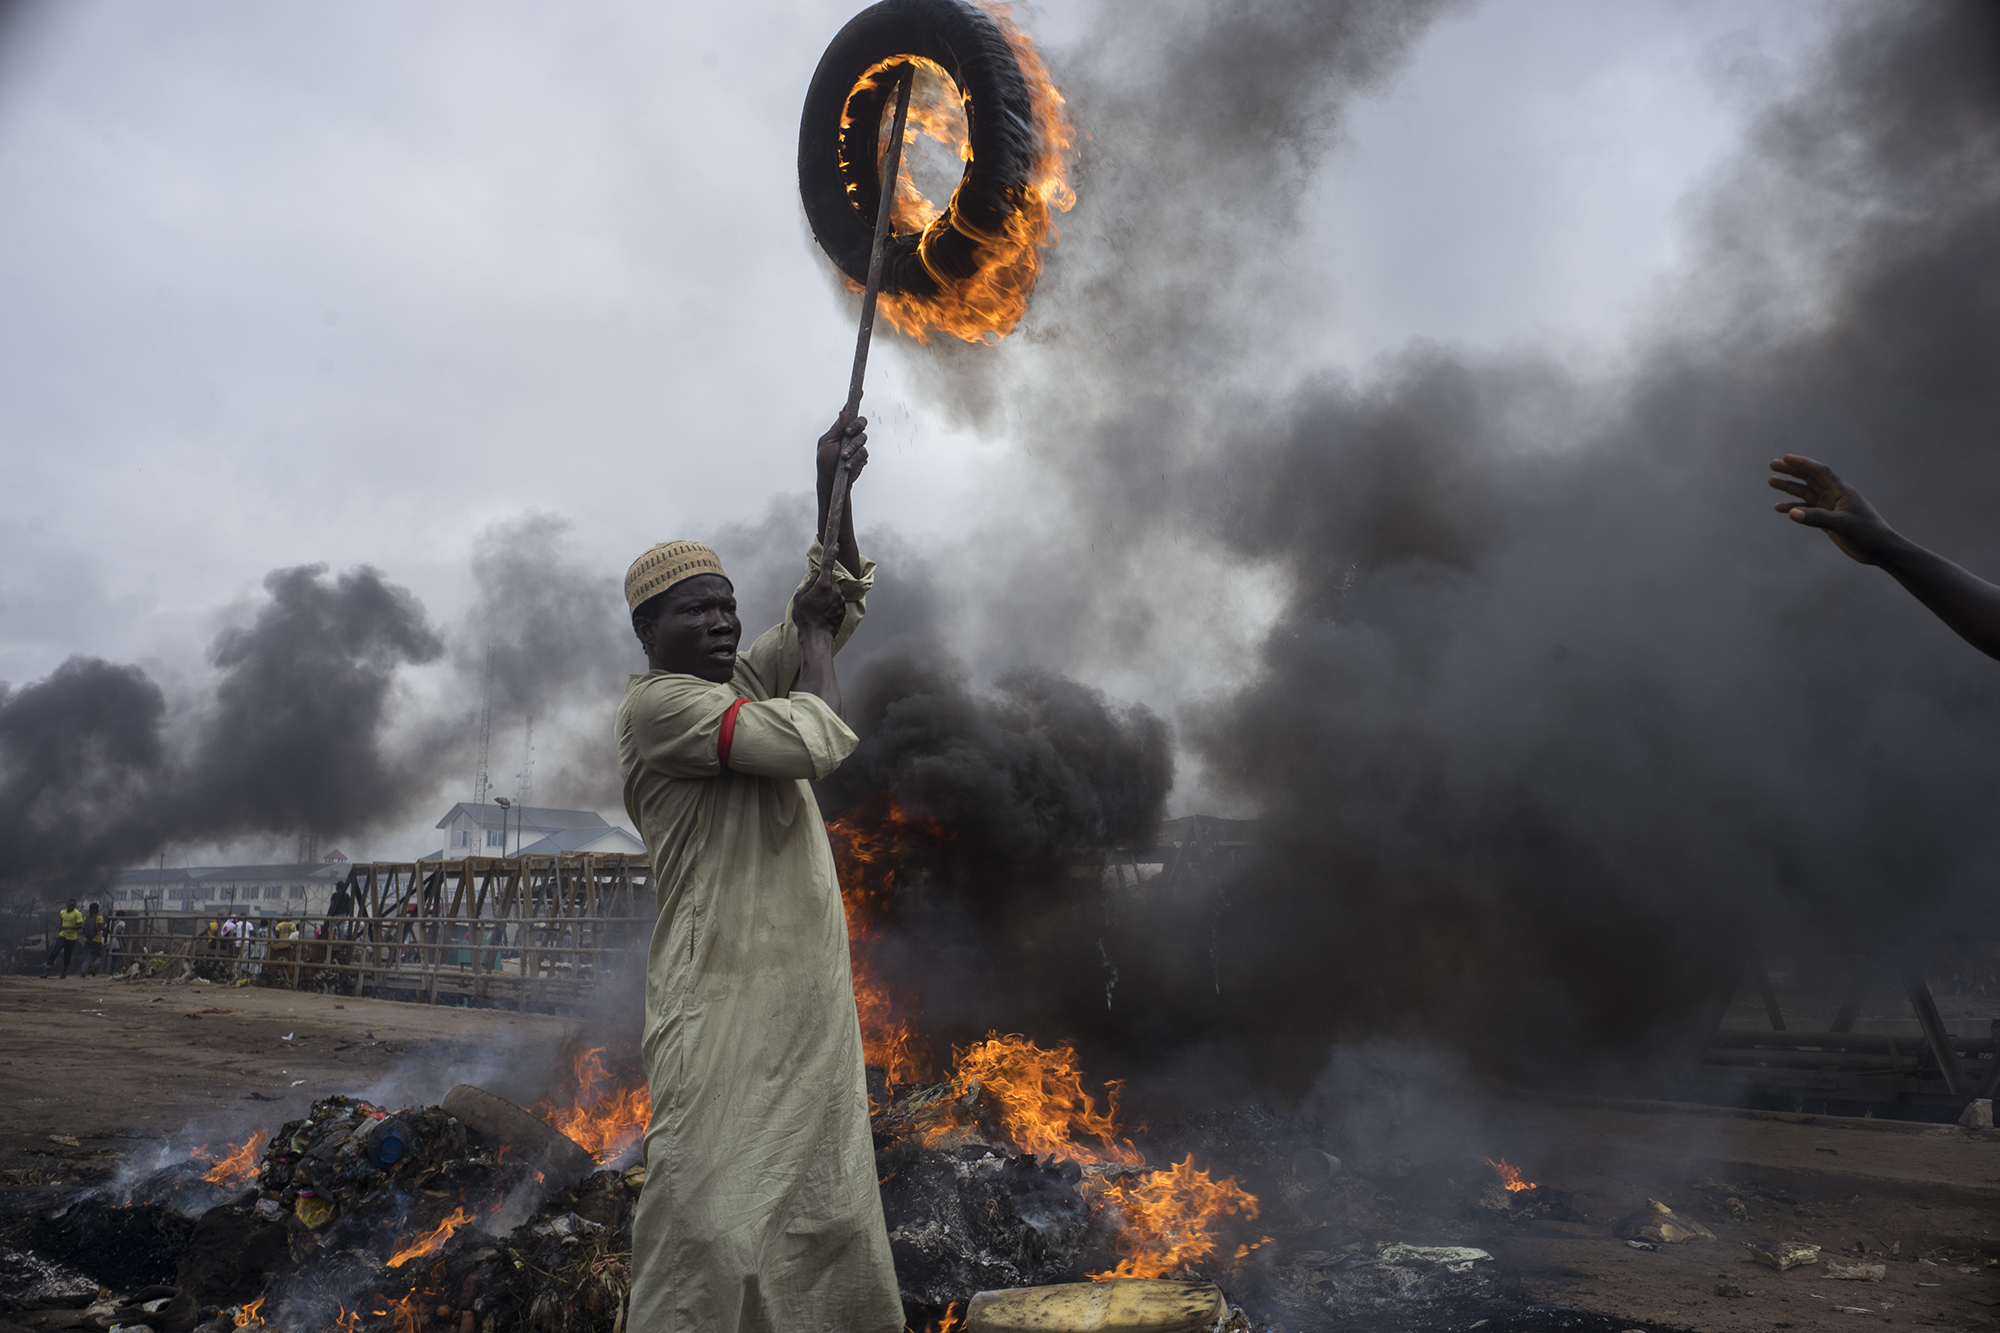 Scene of displaced resident of Agbogbloshie, Accra, Ghana wielding a tire on fire as the landscape burns